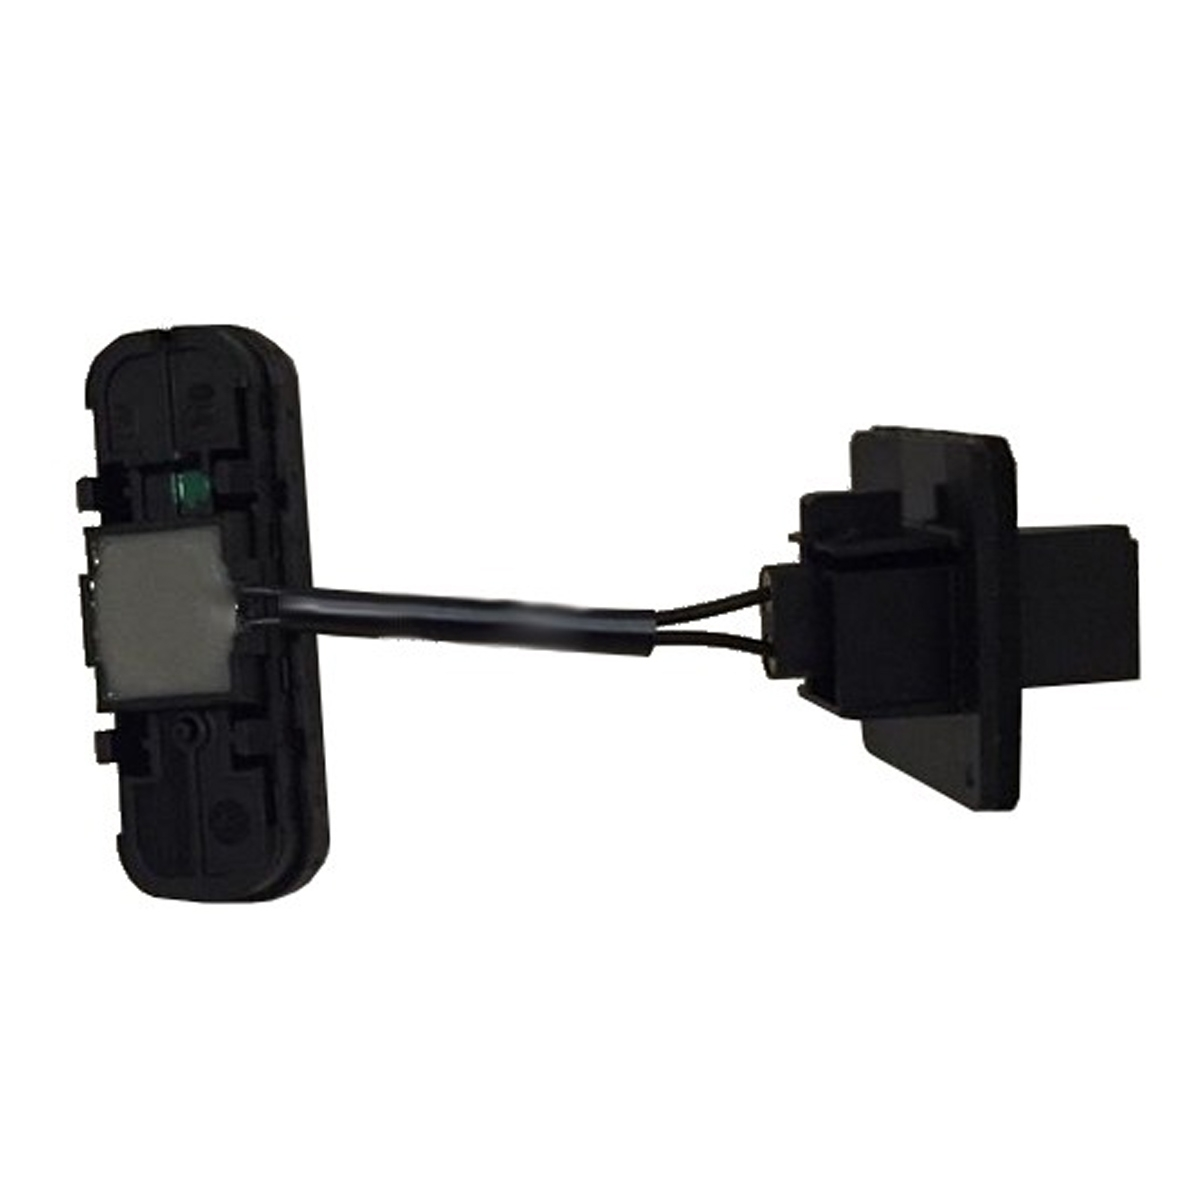 Tailgate / Boot Contact Switch